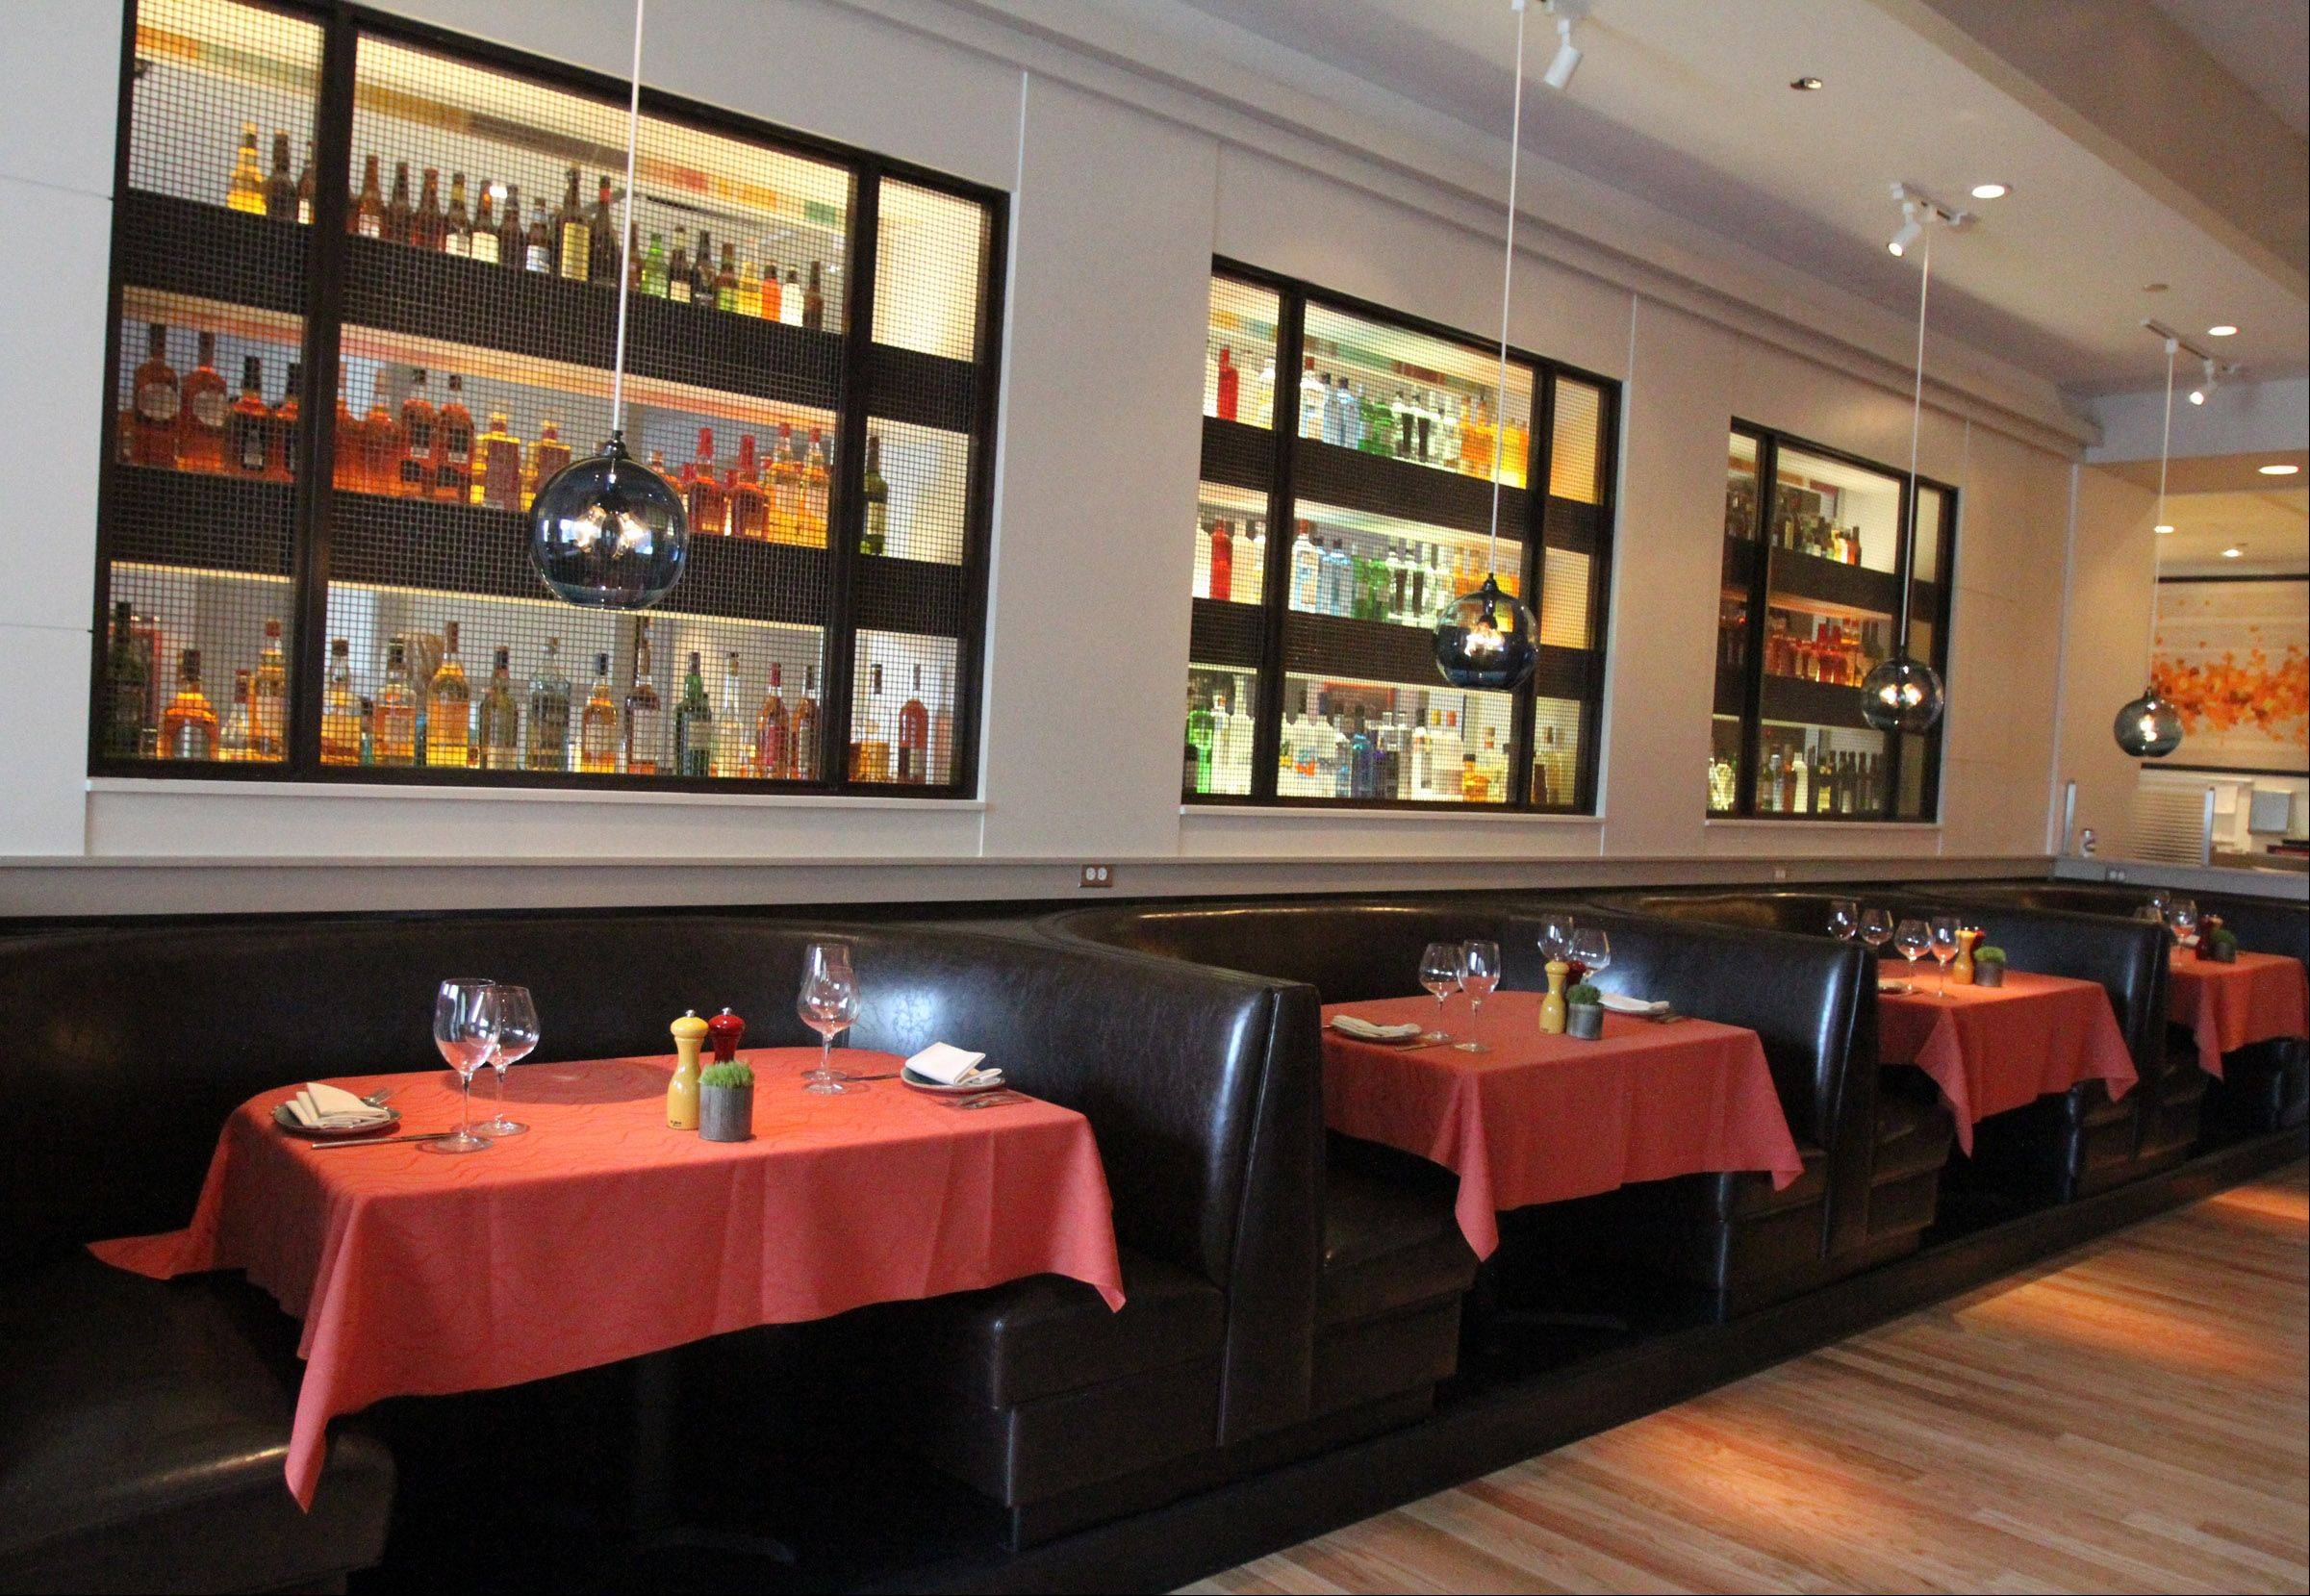 The dining room at Fresco 21 is spacious; the bar is more intimate.